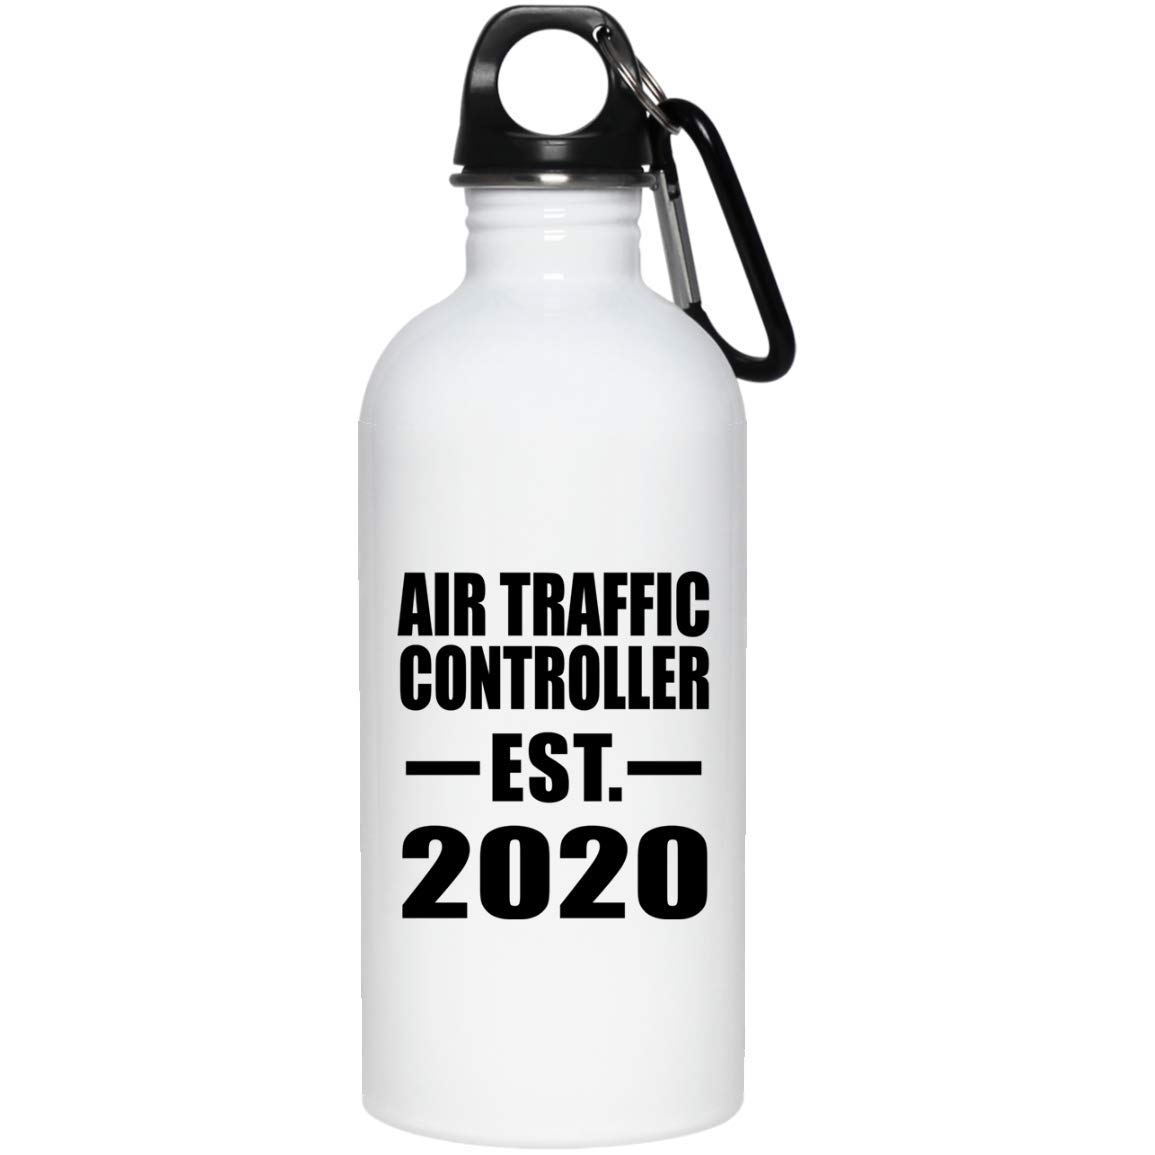 Best Insulated Water Bottle 2020 Amazon.com: Air Traffic Controller Established EST. 2020   20oz